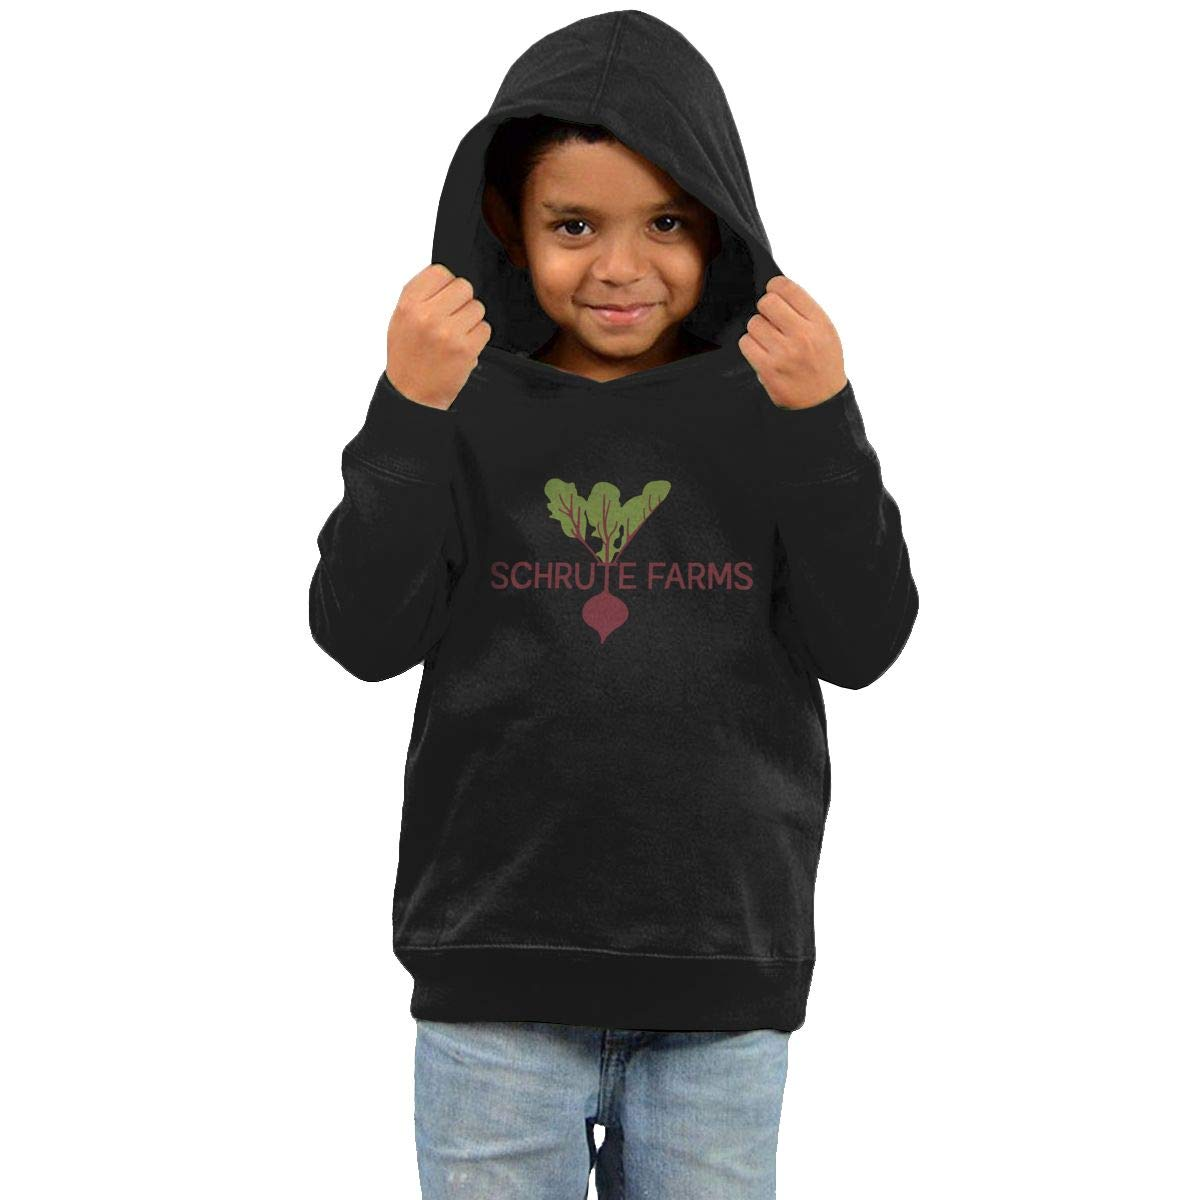 Stacy J. Payne Kids Schrute Farms Classic Hoody41 Black by Stacy J. Payne (Image #1)